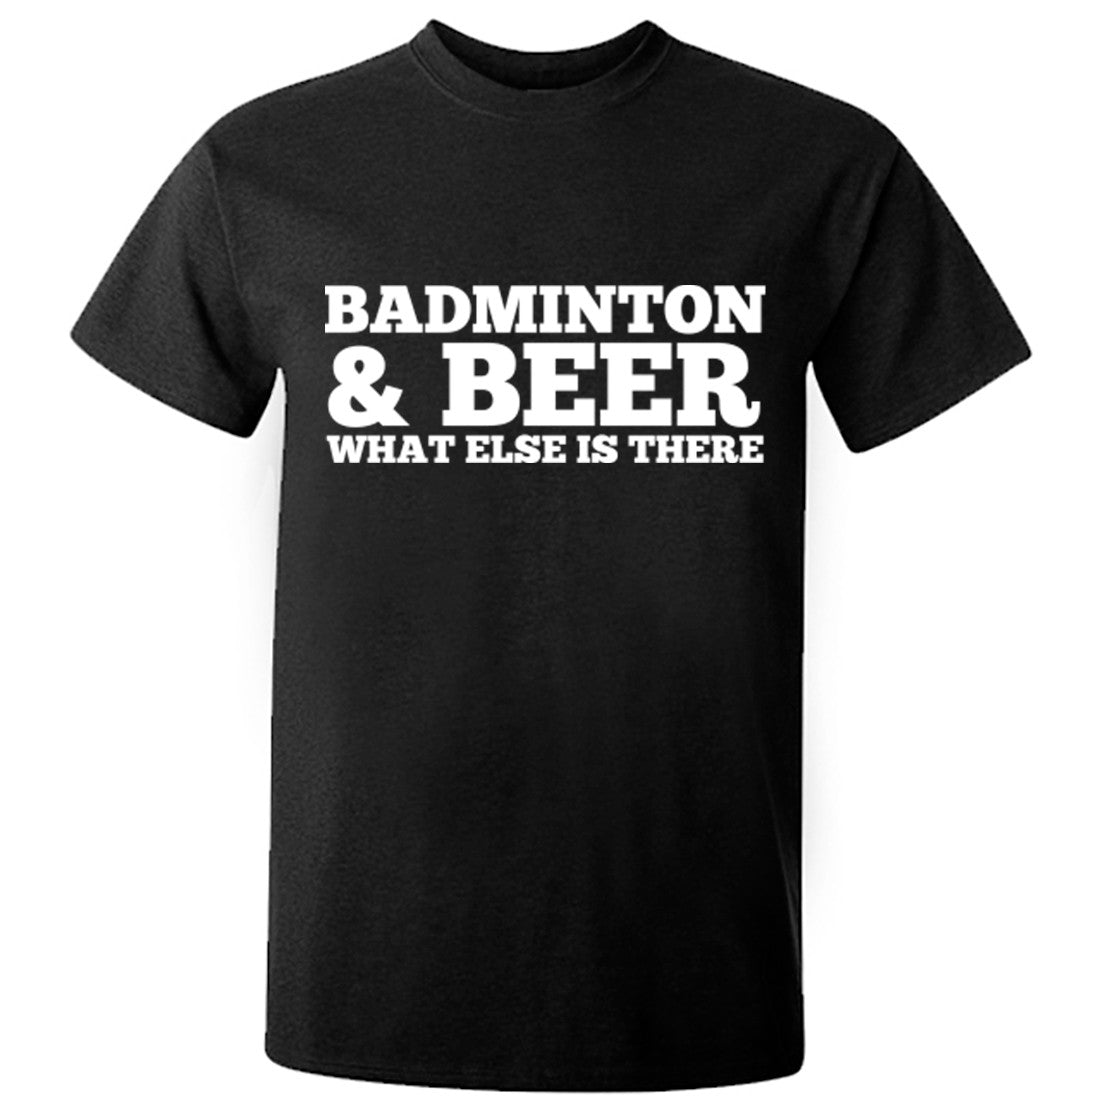 Badminton And Beer What Else Is There Unisex Fit T-Shirt K0677 - Illustrated Identity Ltd.